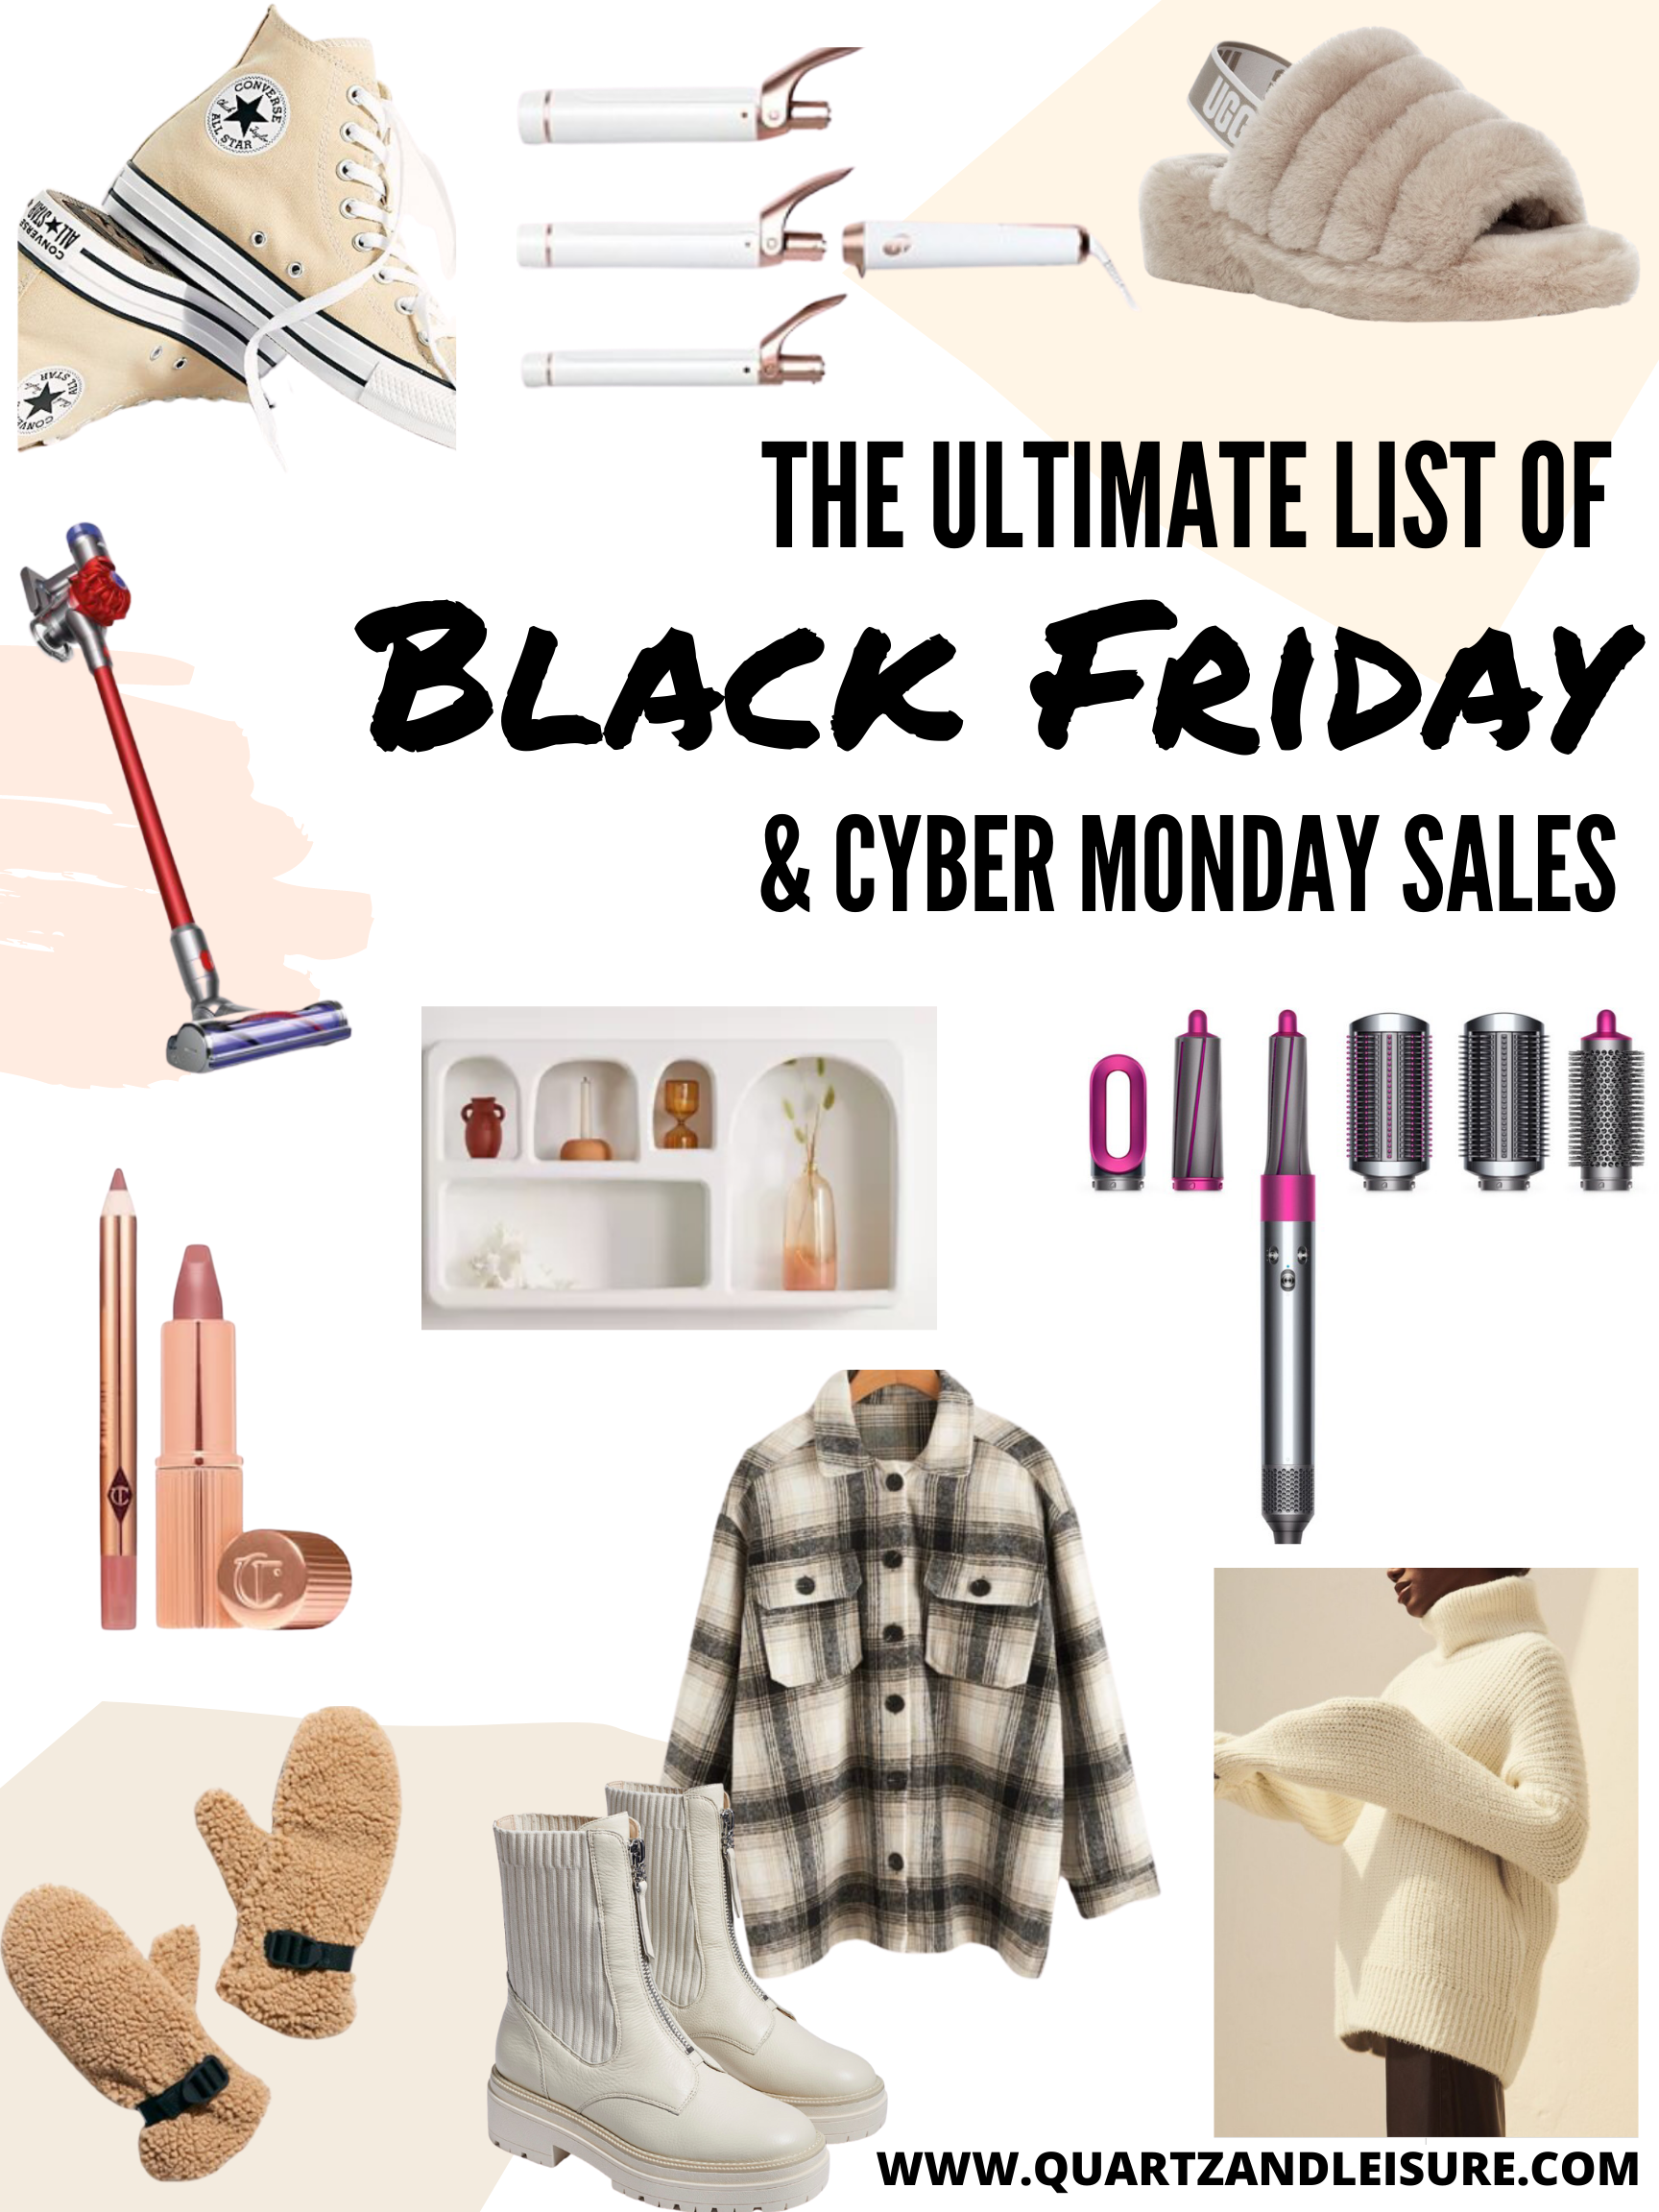 List of Black Friday sales 2020